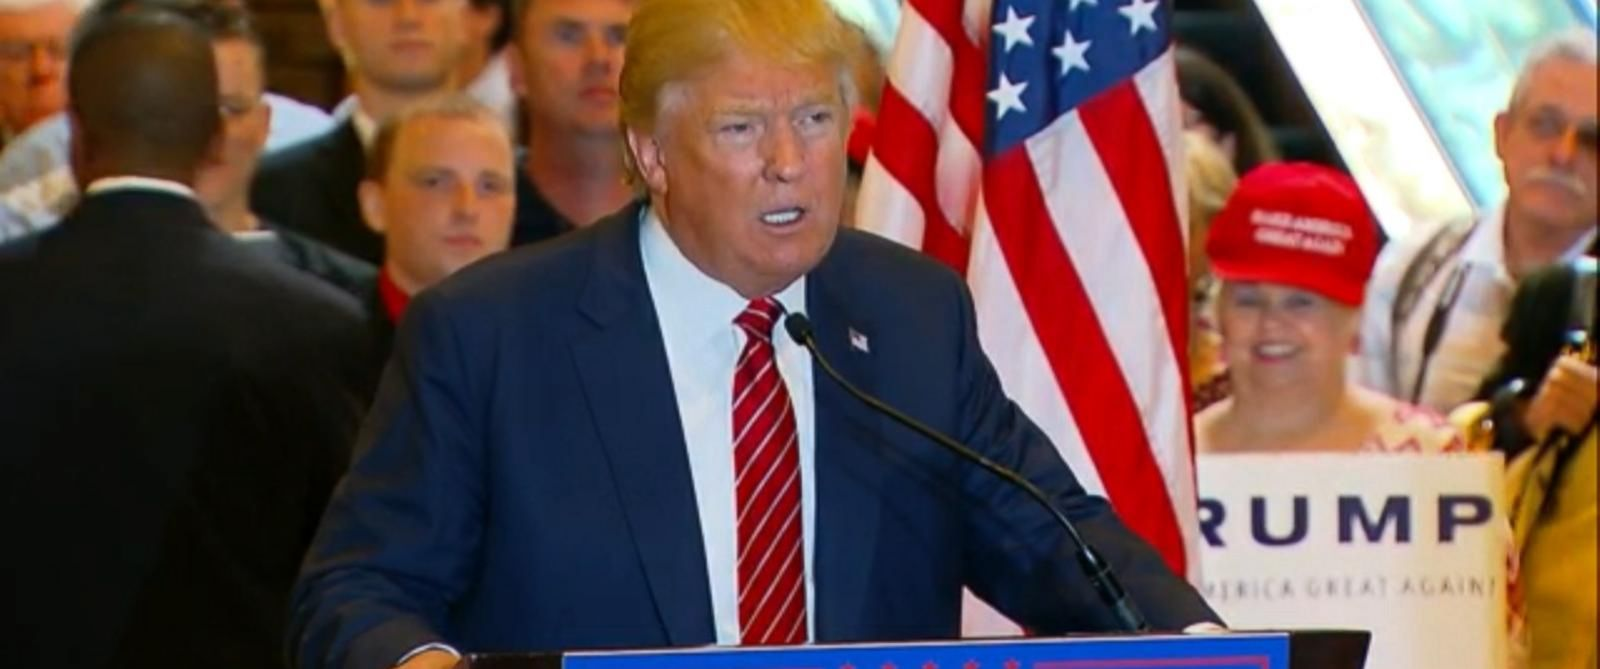 PHOTO: Donald Trump speaks at a press conference on Sept. 28, 2015.